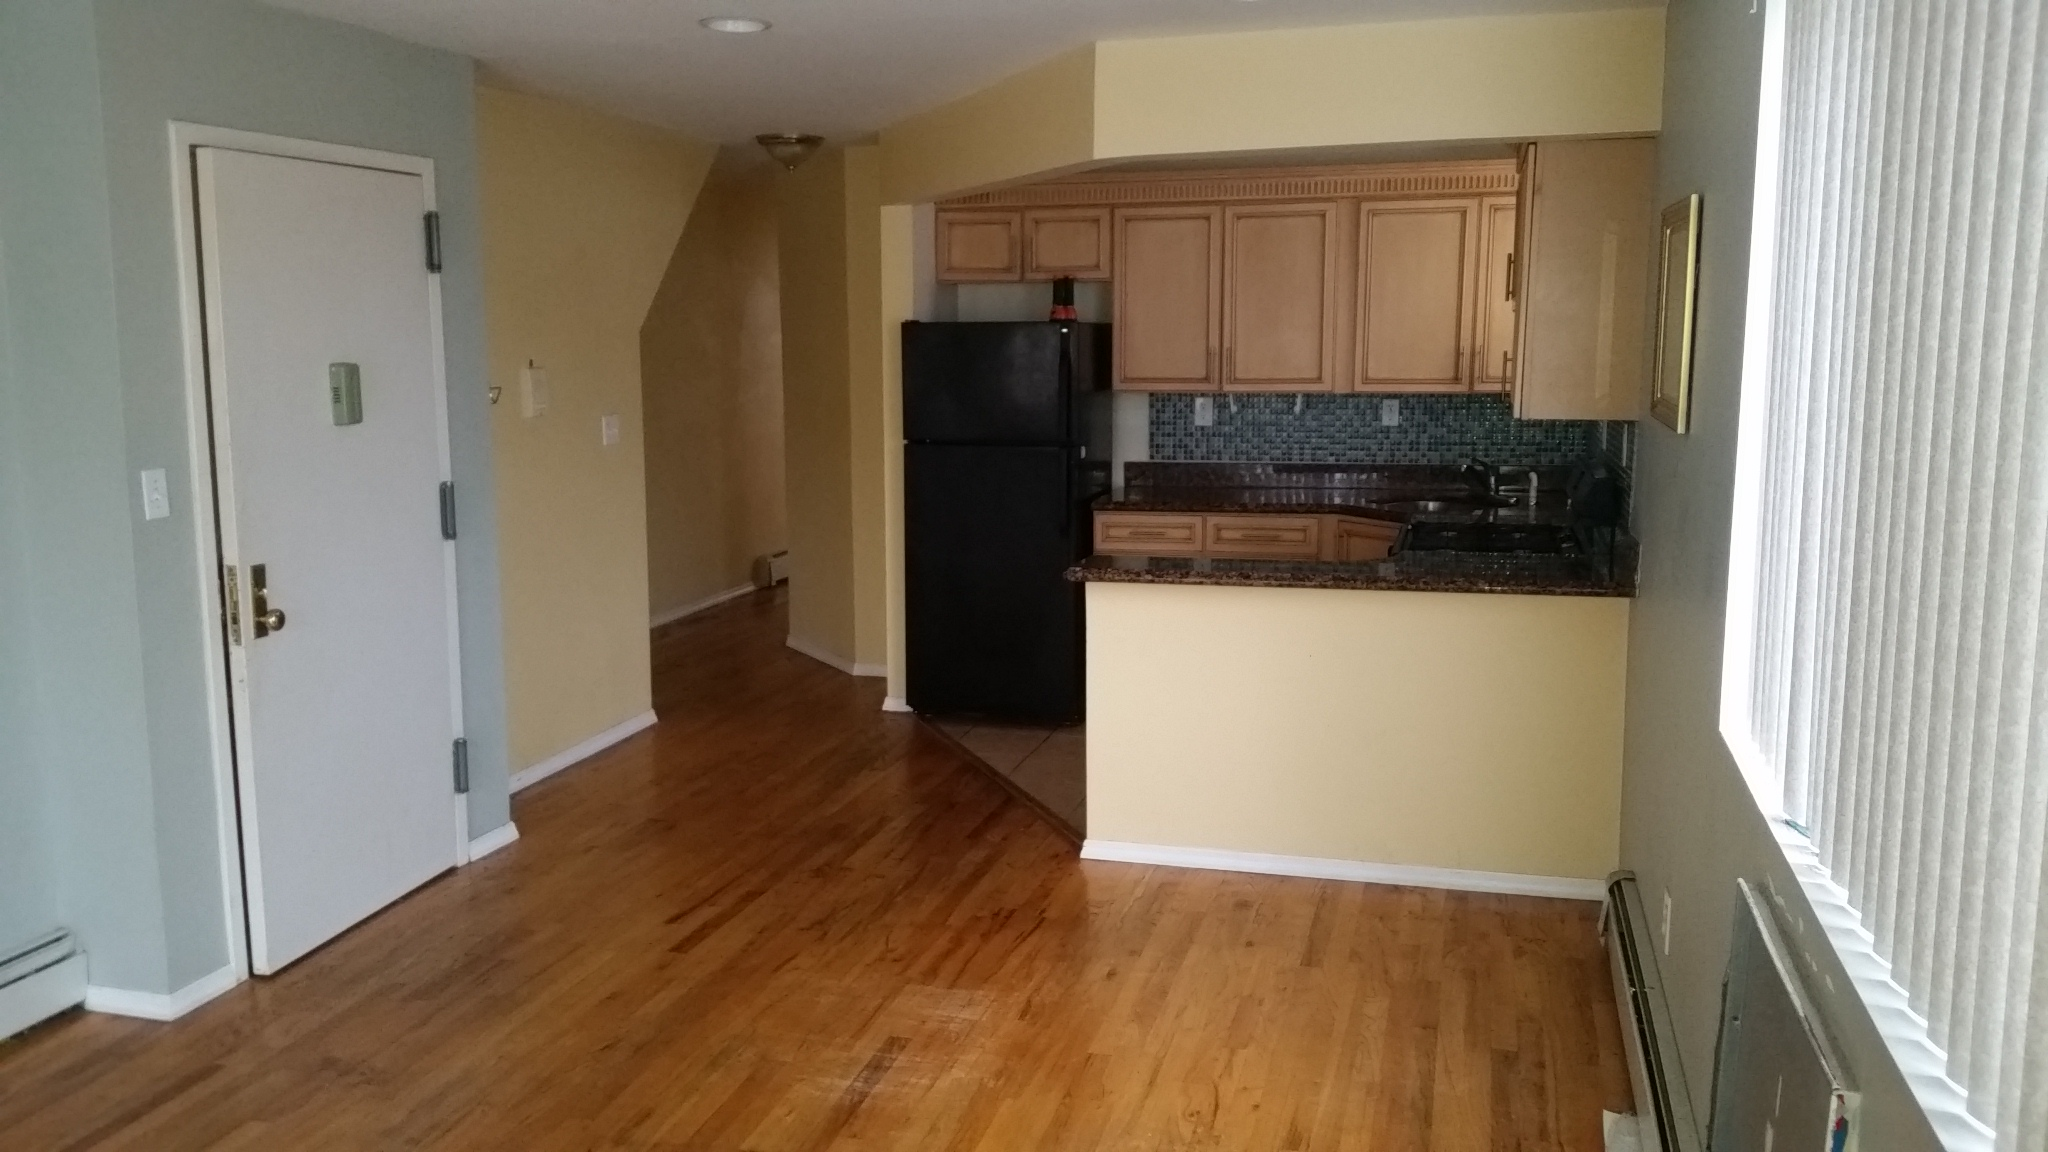 Lovely 2br apartment in canarsie brooklyn - One bedroom apartments in canarsie brooklyn ...